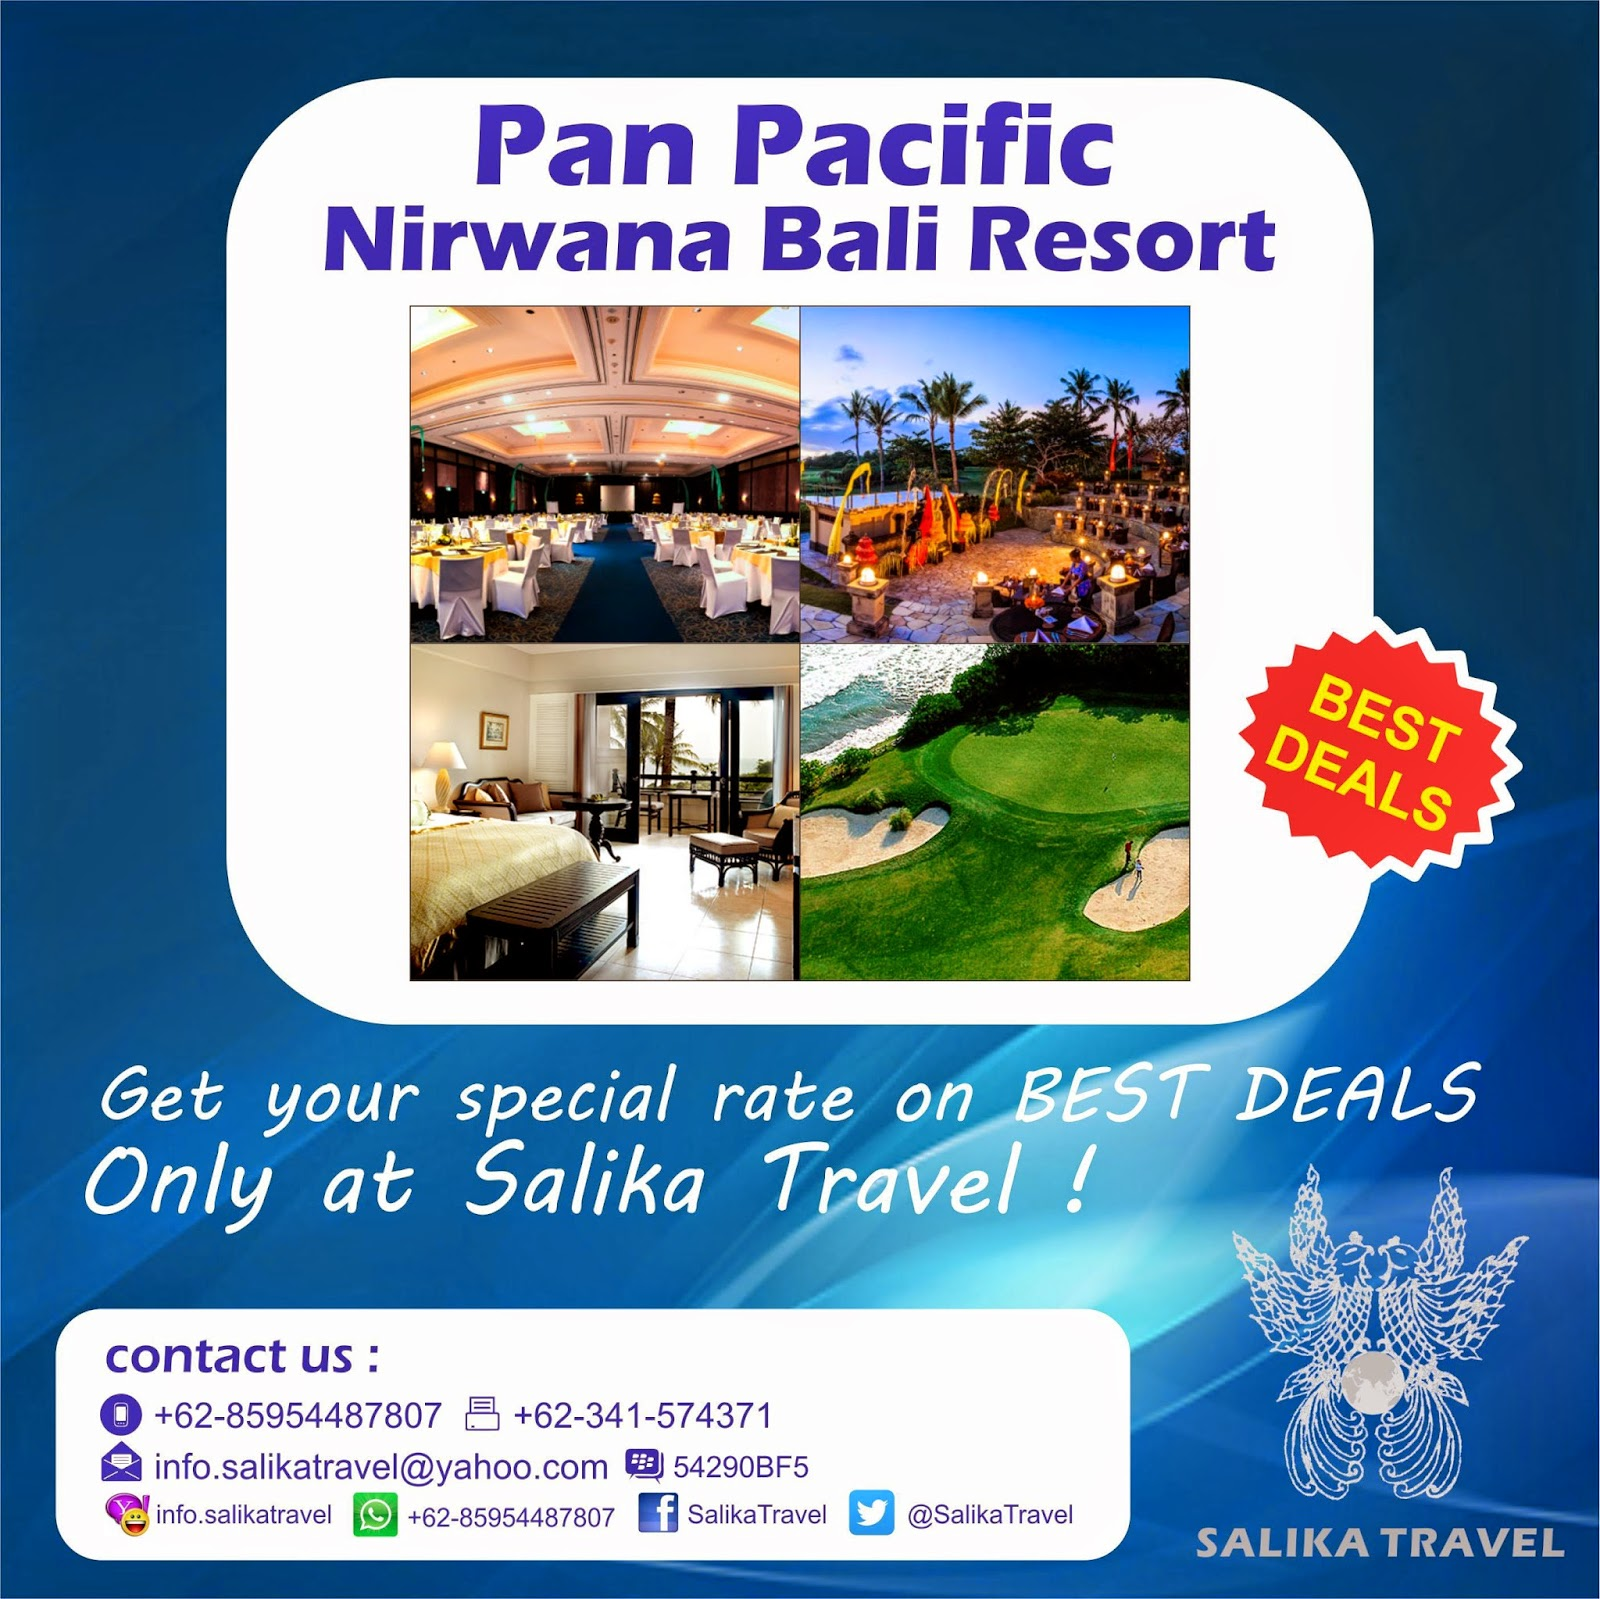 Pan Pacific Nirwana Bali Resort - Salika Travel